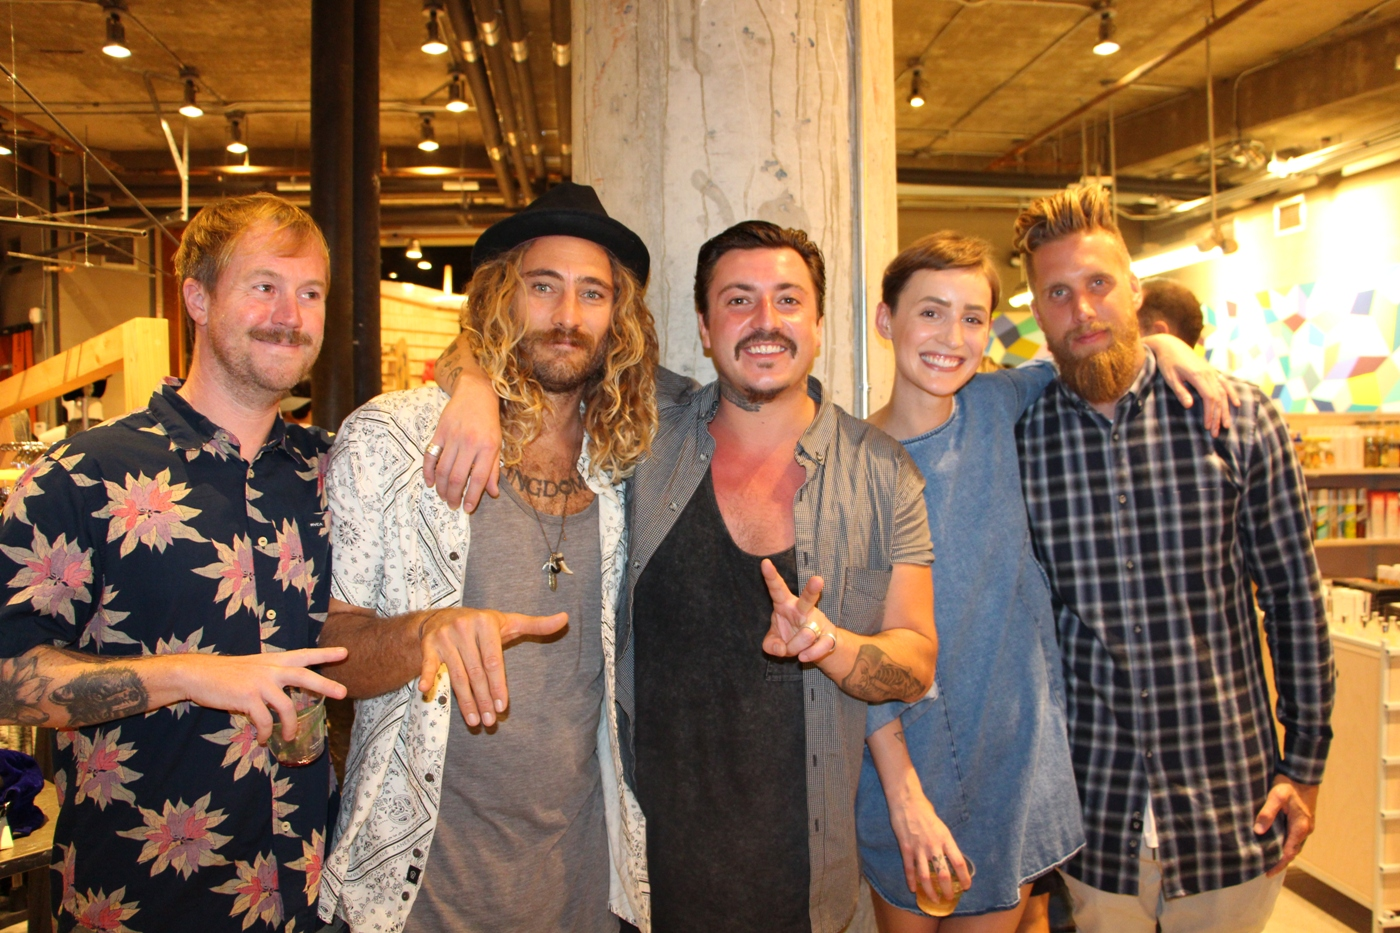 Party Pics: Urban Outfitters launch